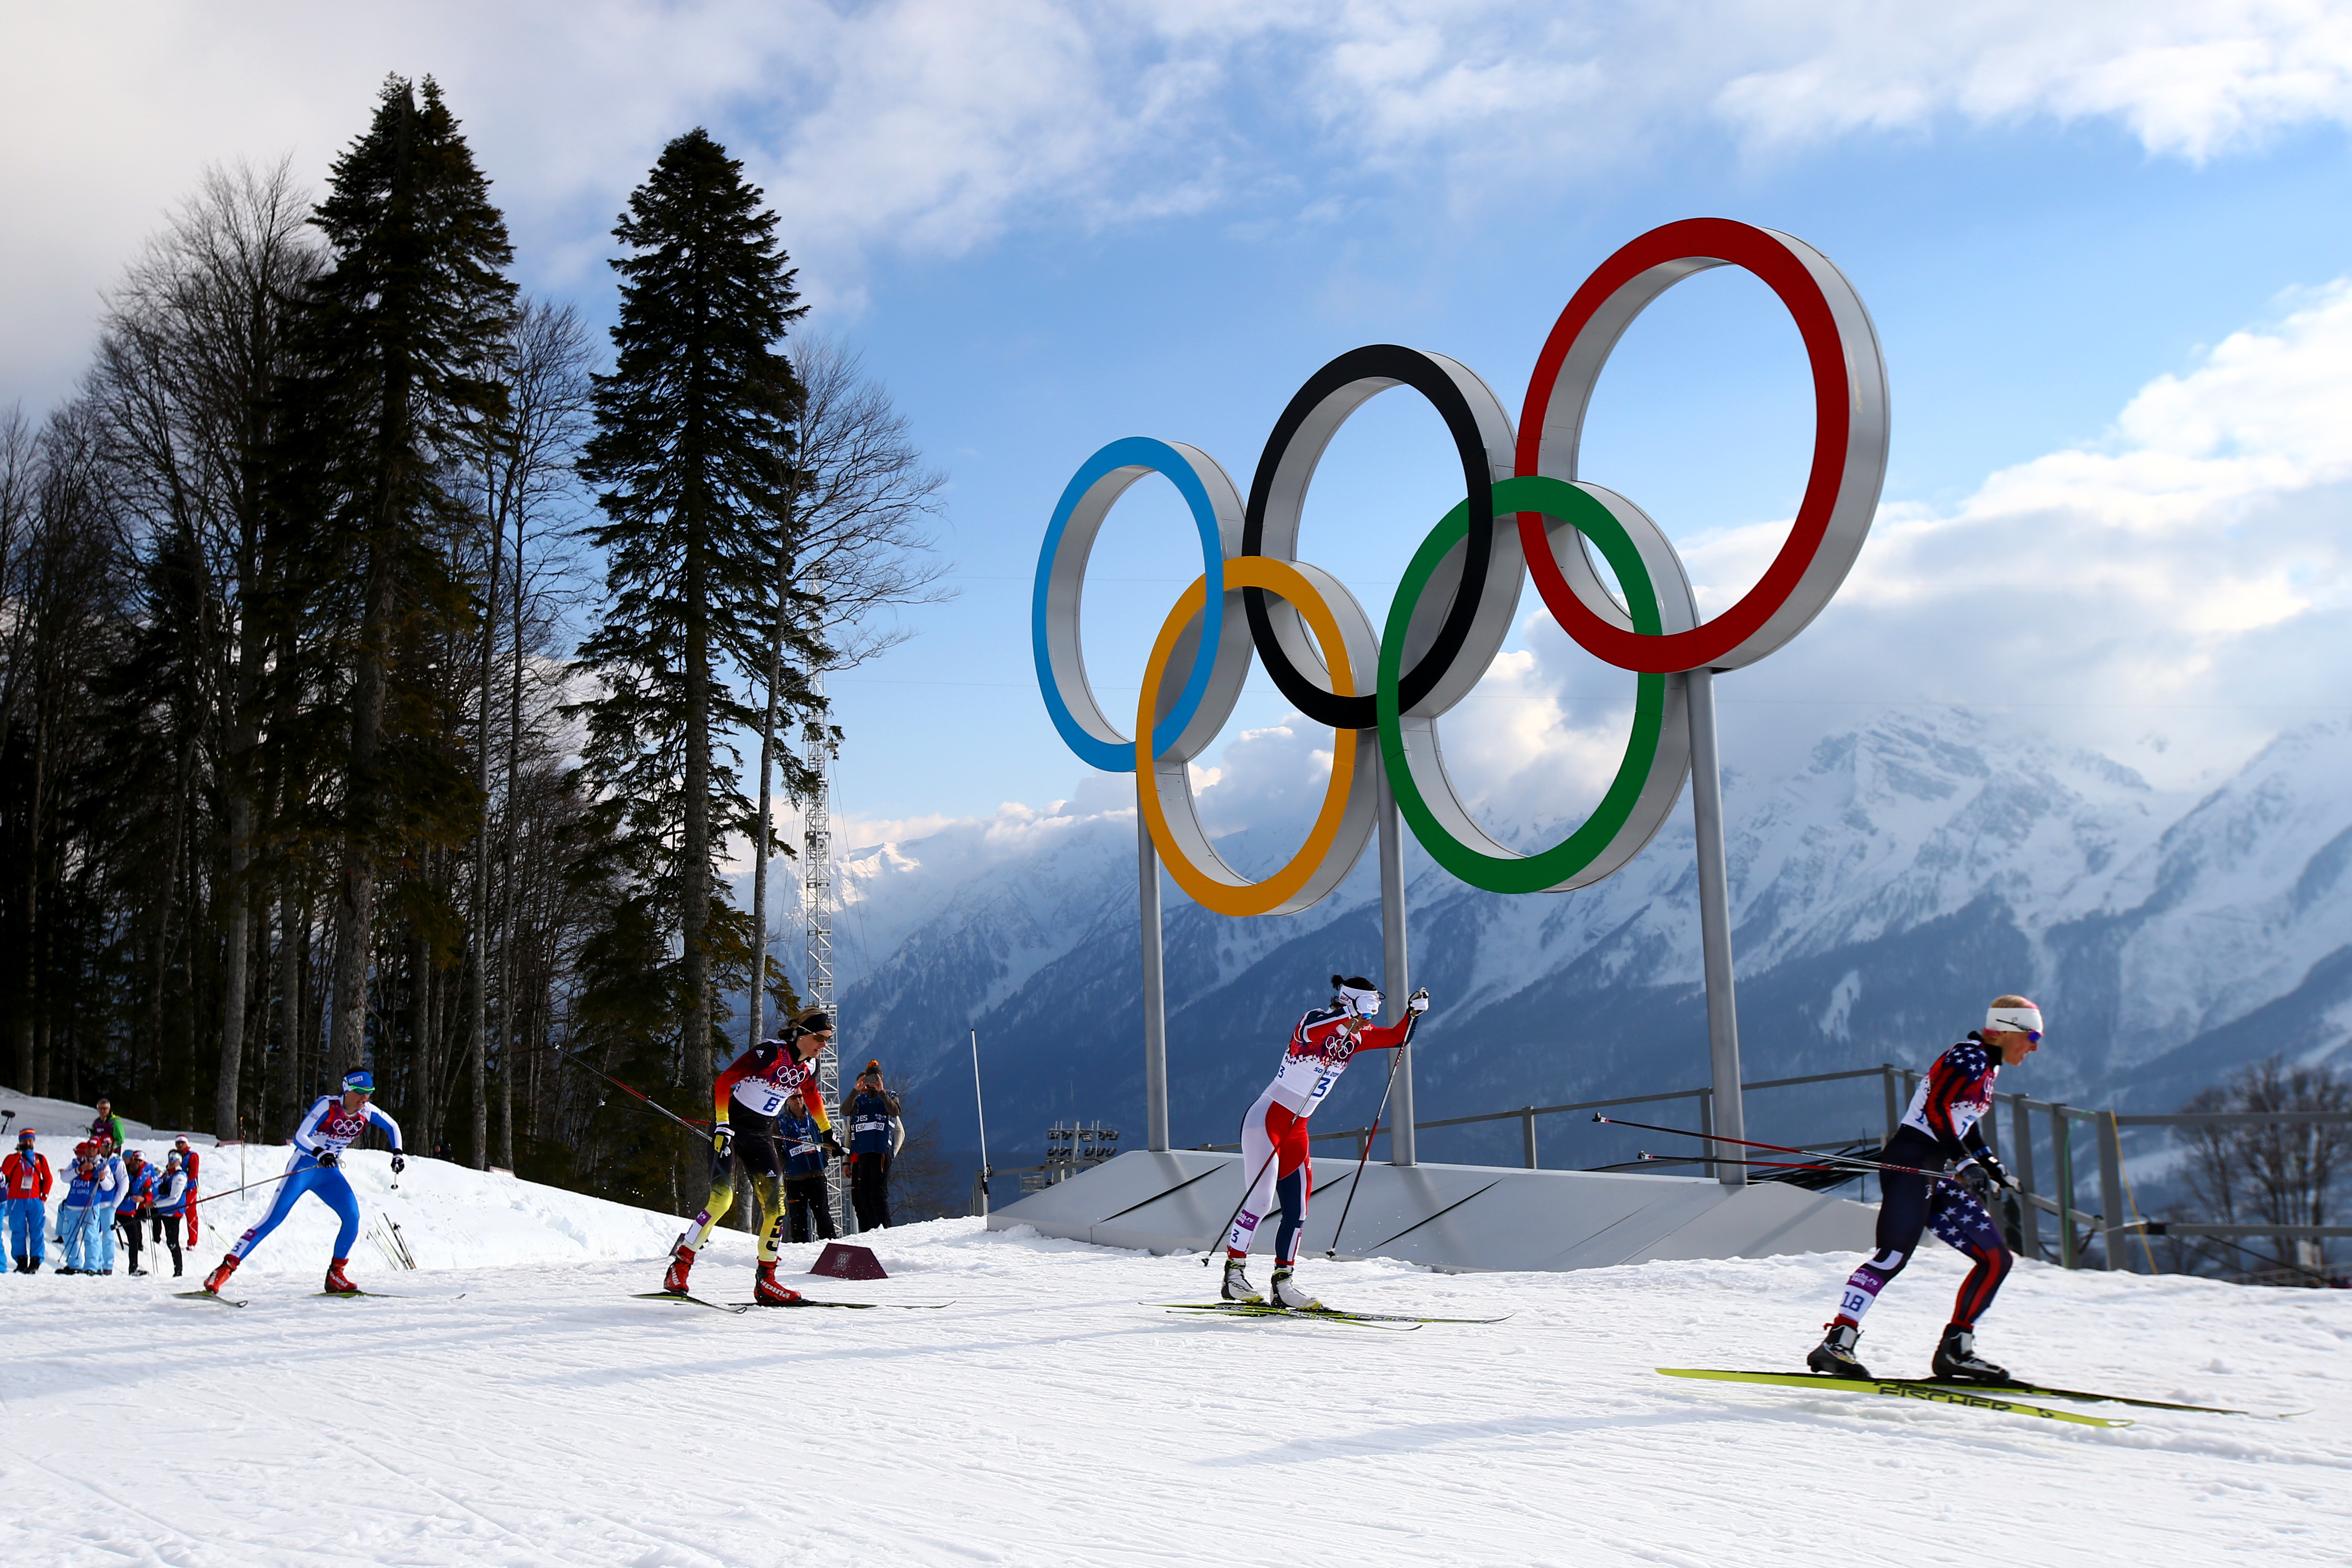 SOCHI, RUSSIA - FEBRUARY 11:  Kikkan Randall of the United States (R) leads the pack in Finals of the Ladies' Sprint Free during day four of the Sochi 2014 Winter Olympics at Laura Cross-country Ski & Biathlon Center on February 11, 2014 in Sochi, Russia.  (Photo by Doug Pensinger/Getty Images)